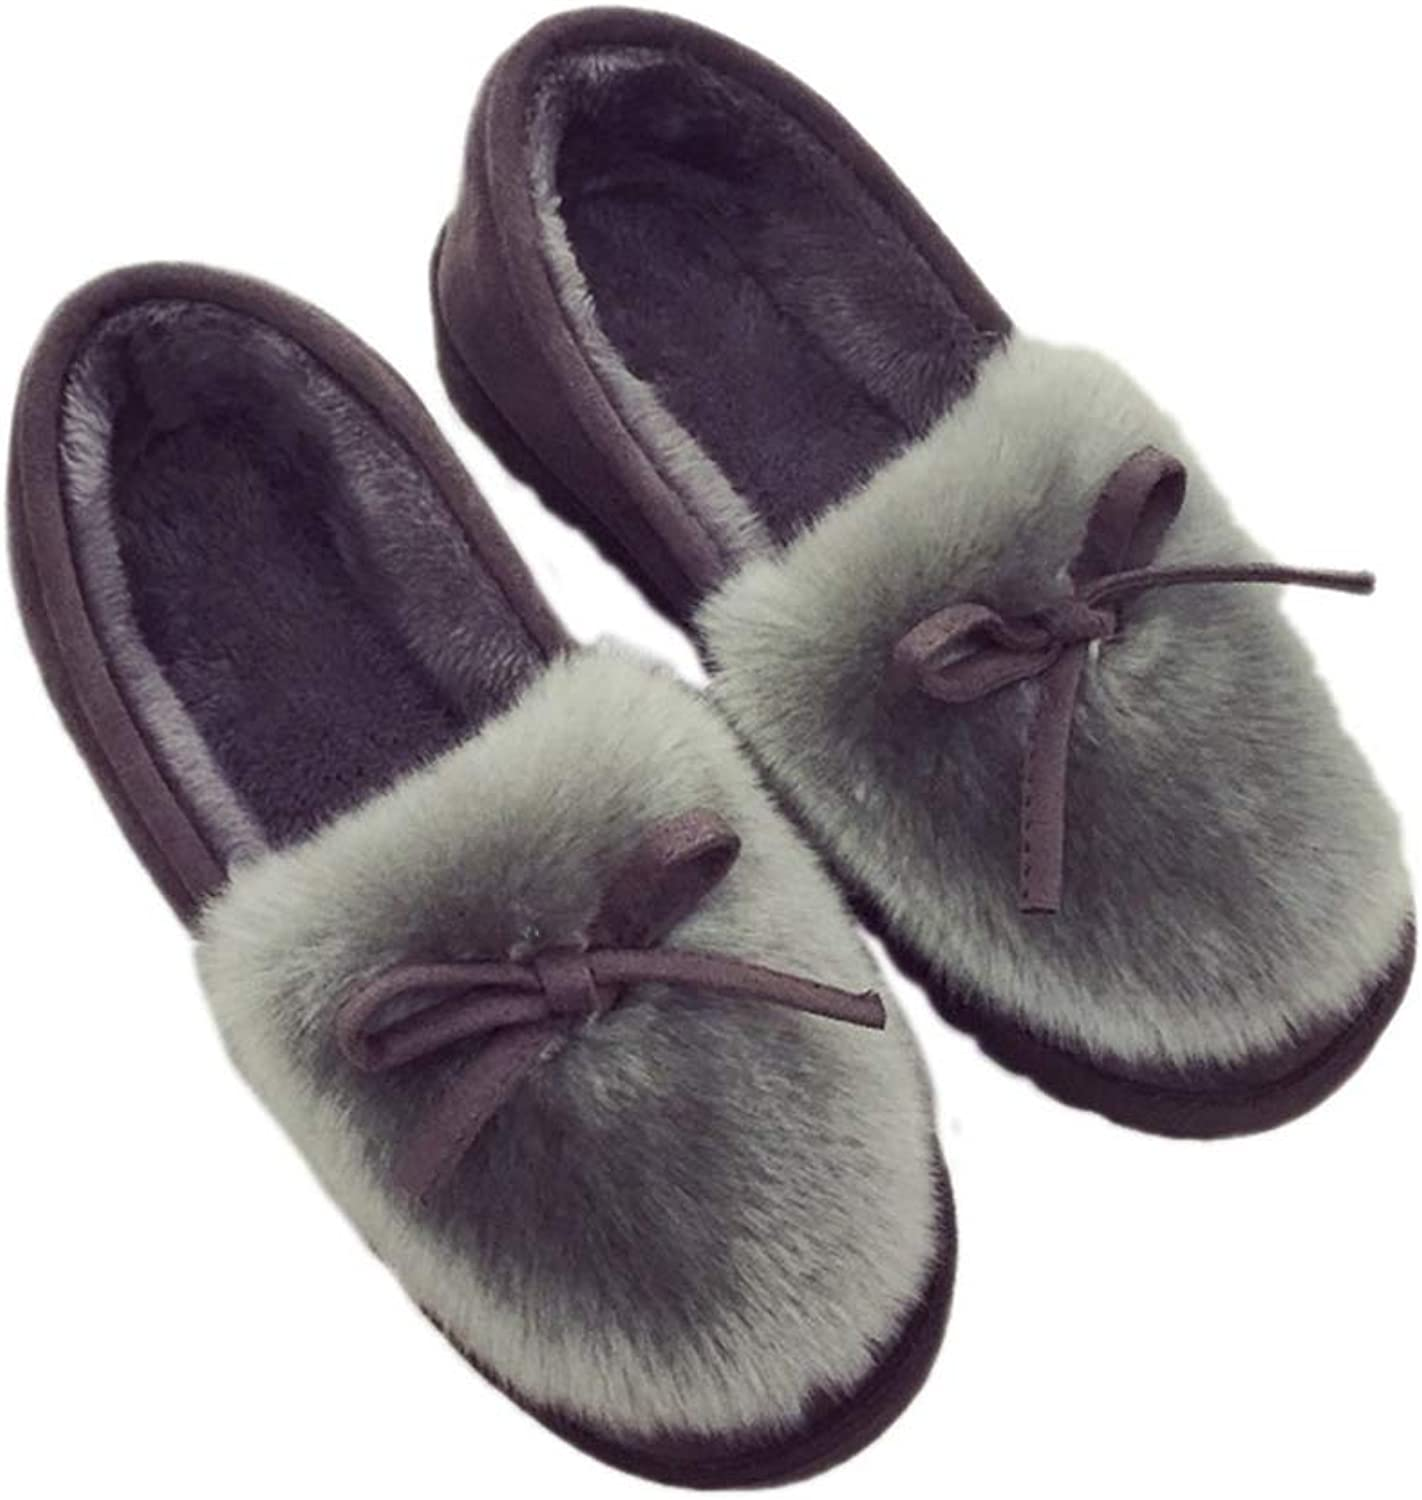 Nafanio Women Winter Moccasin shoes Warm Flock Flat Slip On Slippers for Home Warm Indoor Outdoor Girl Flats